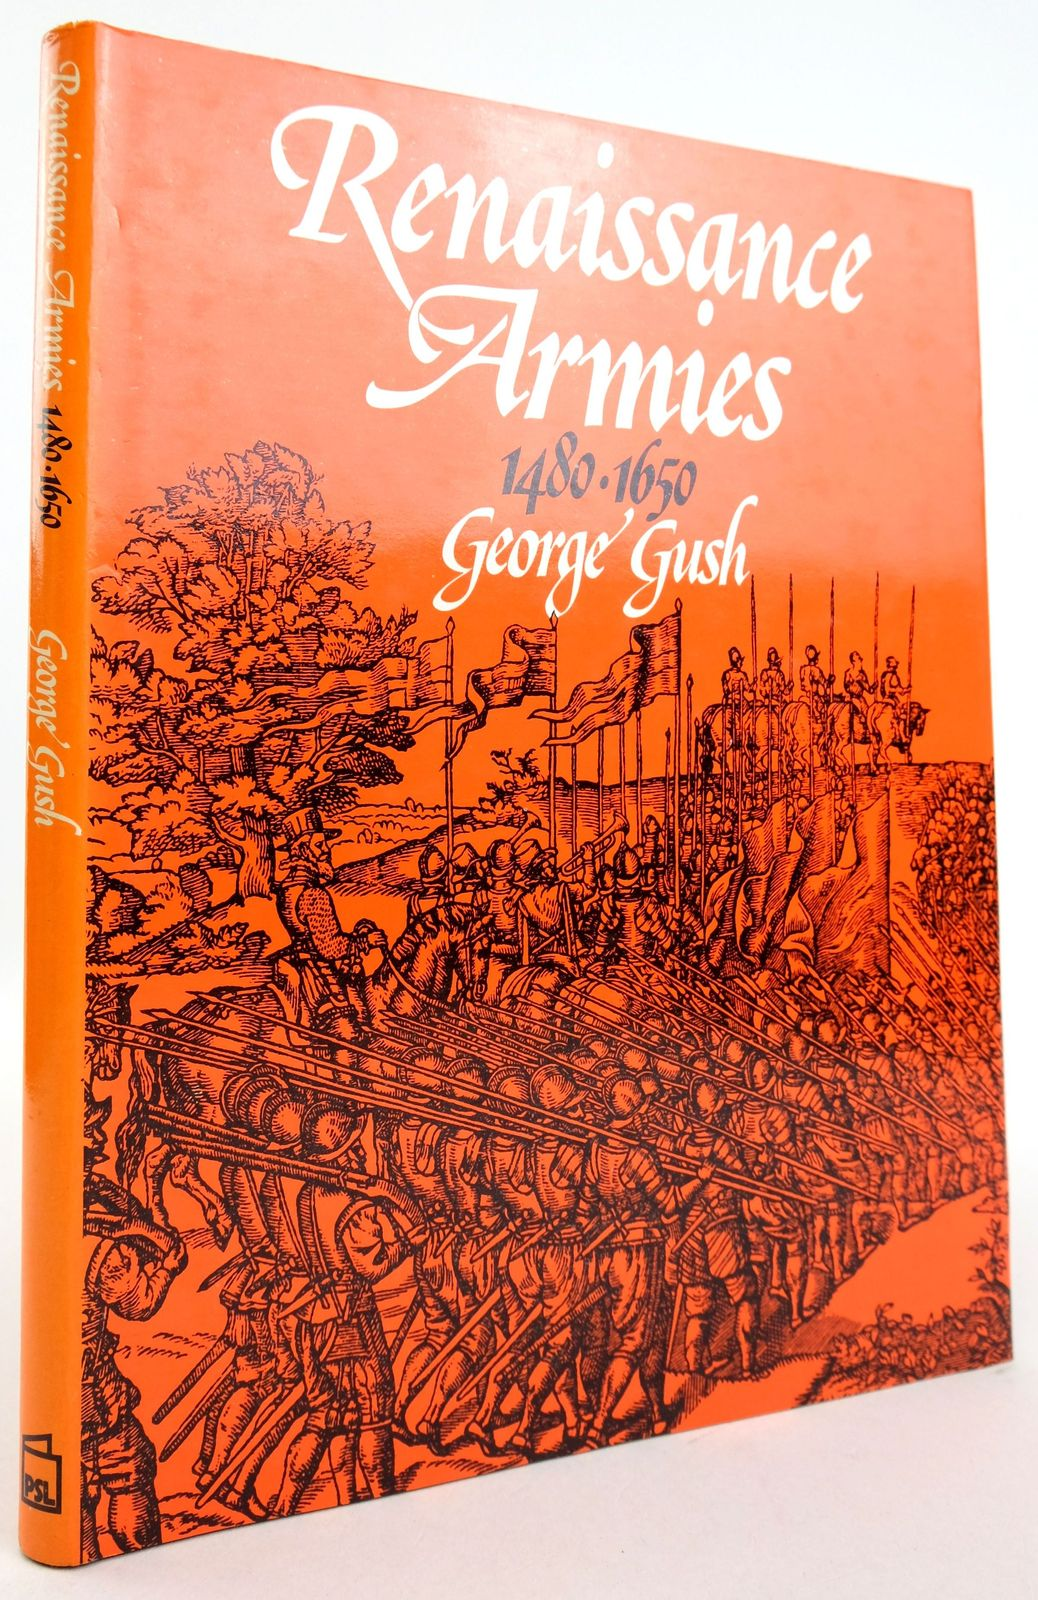 Photo of RENAISSANCE ARMIES 1480-1650 written by Gush, George published by Patrick Stephens (STOCK CODE: 1819700)  for sale by Stella & Rose's Books